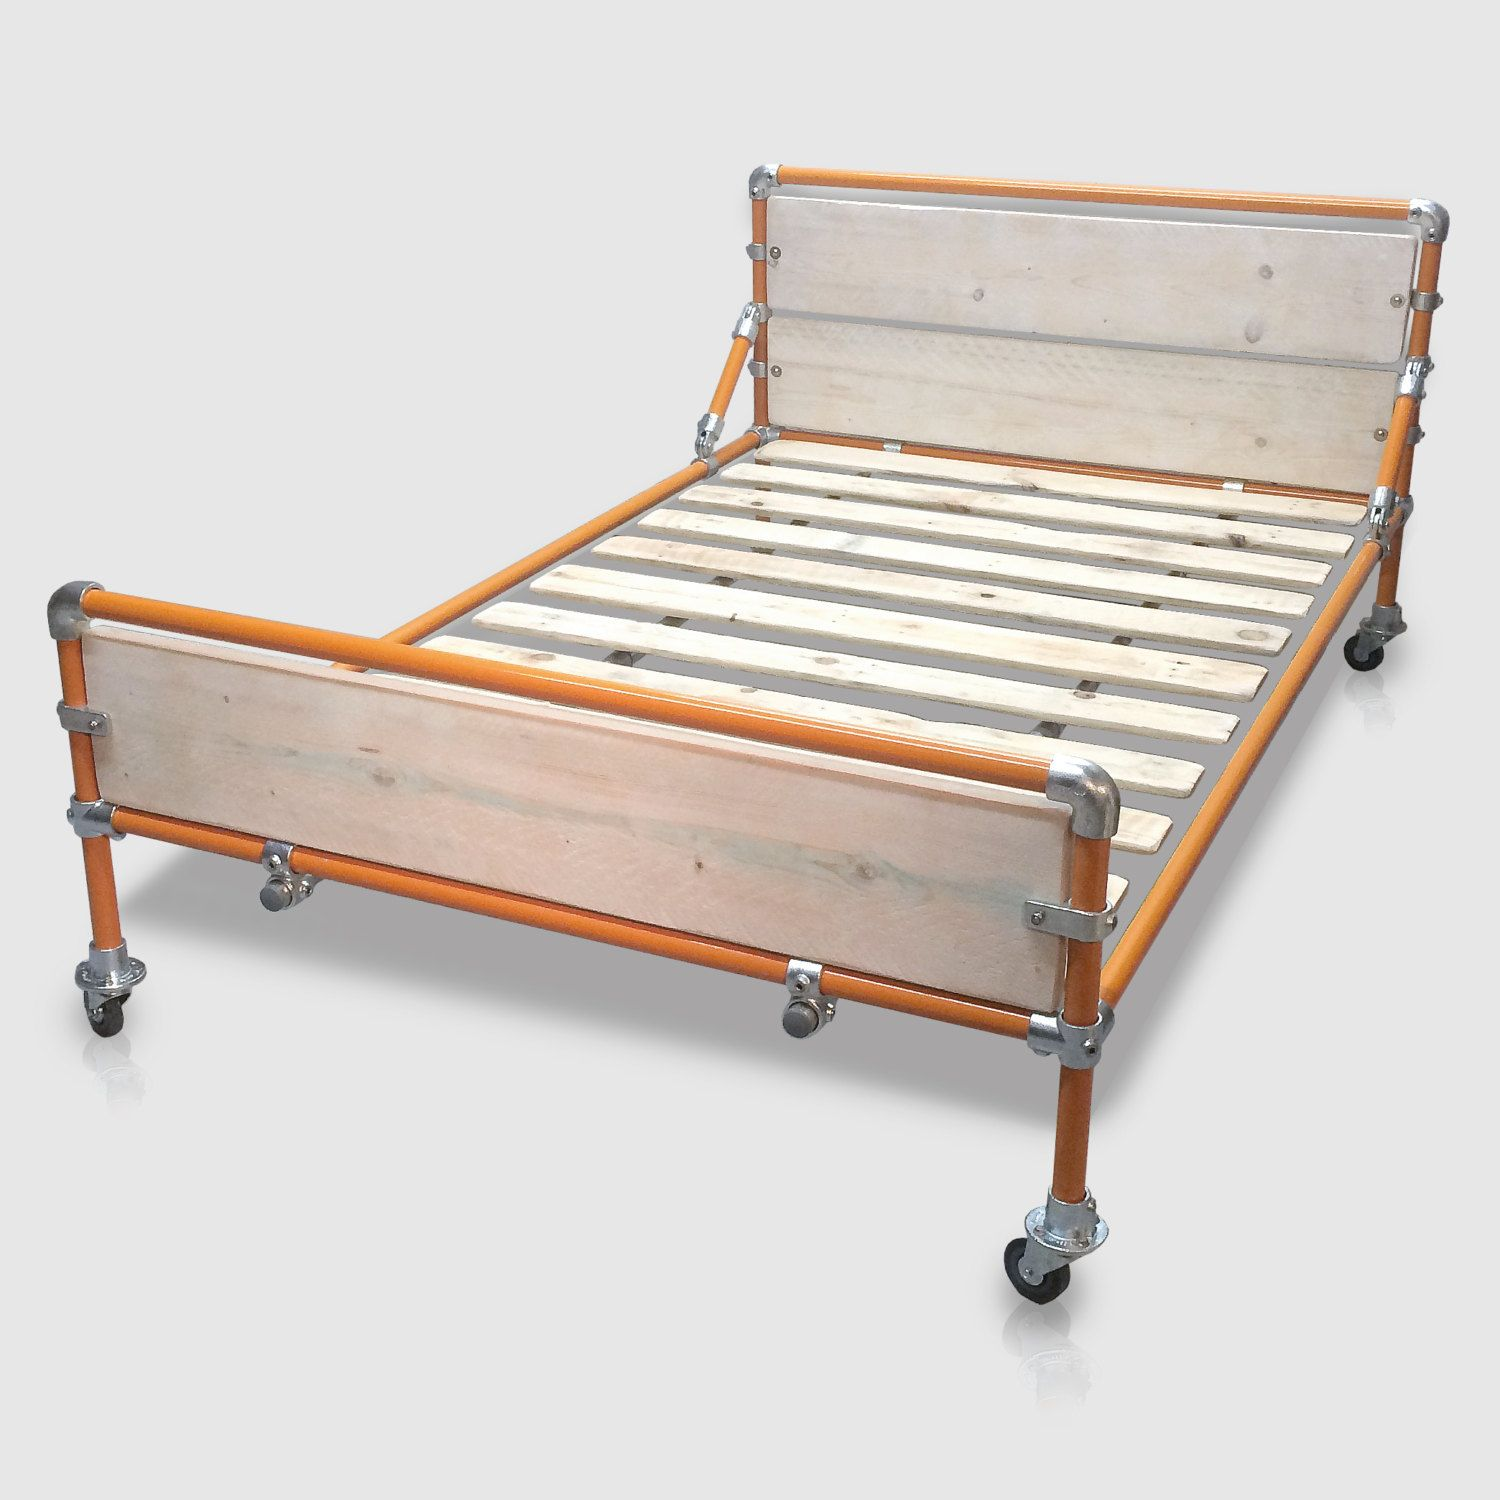 Metal bed frames with storage - Metal Bed Frame With Storage Space Below Modern Industrial Loft Style Furniture Idea For